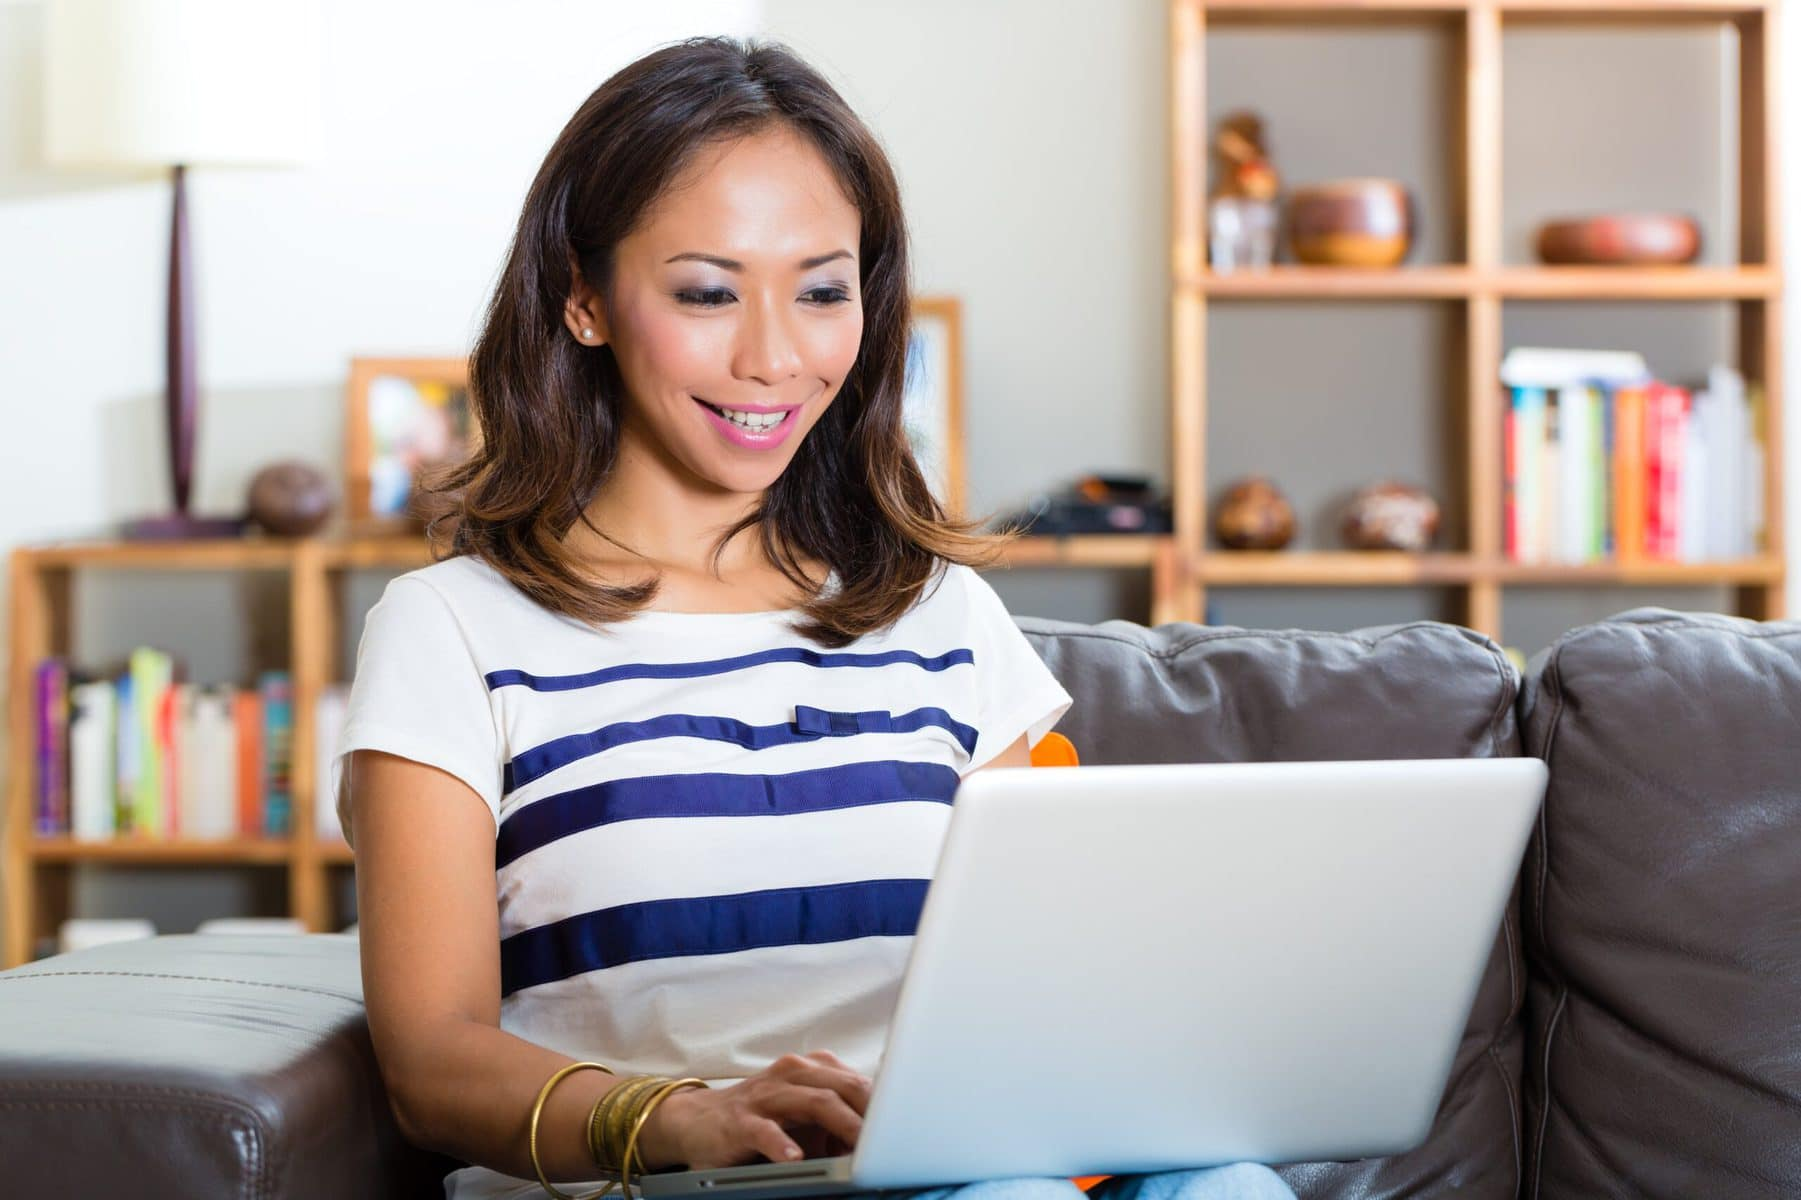 Young woman sitting on couch with laptop reading a sensory-friendly email.